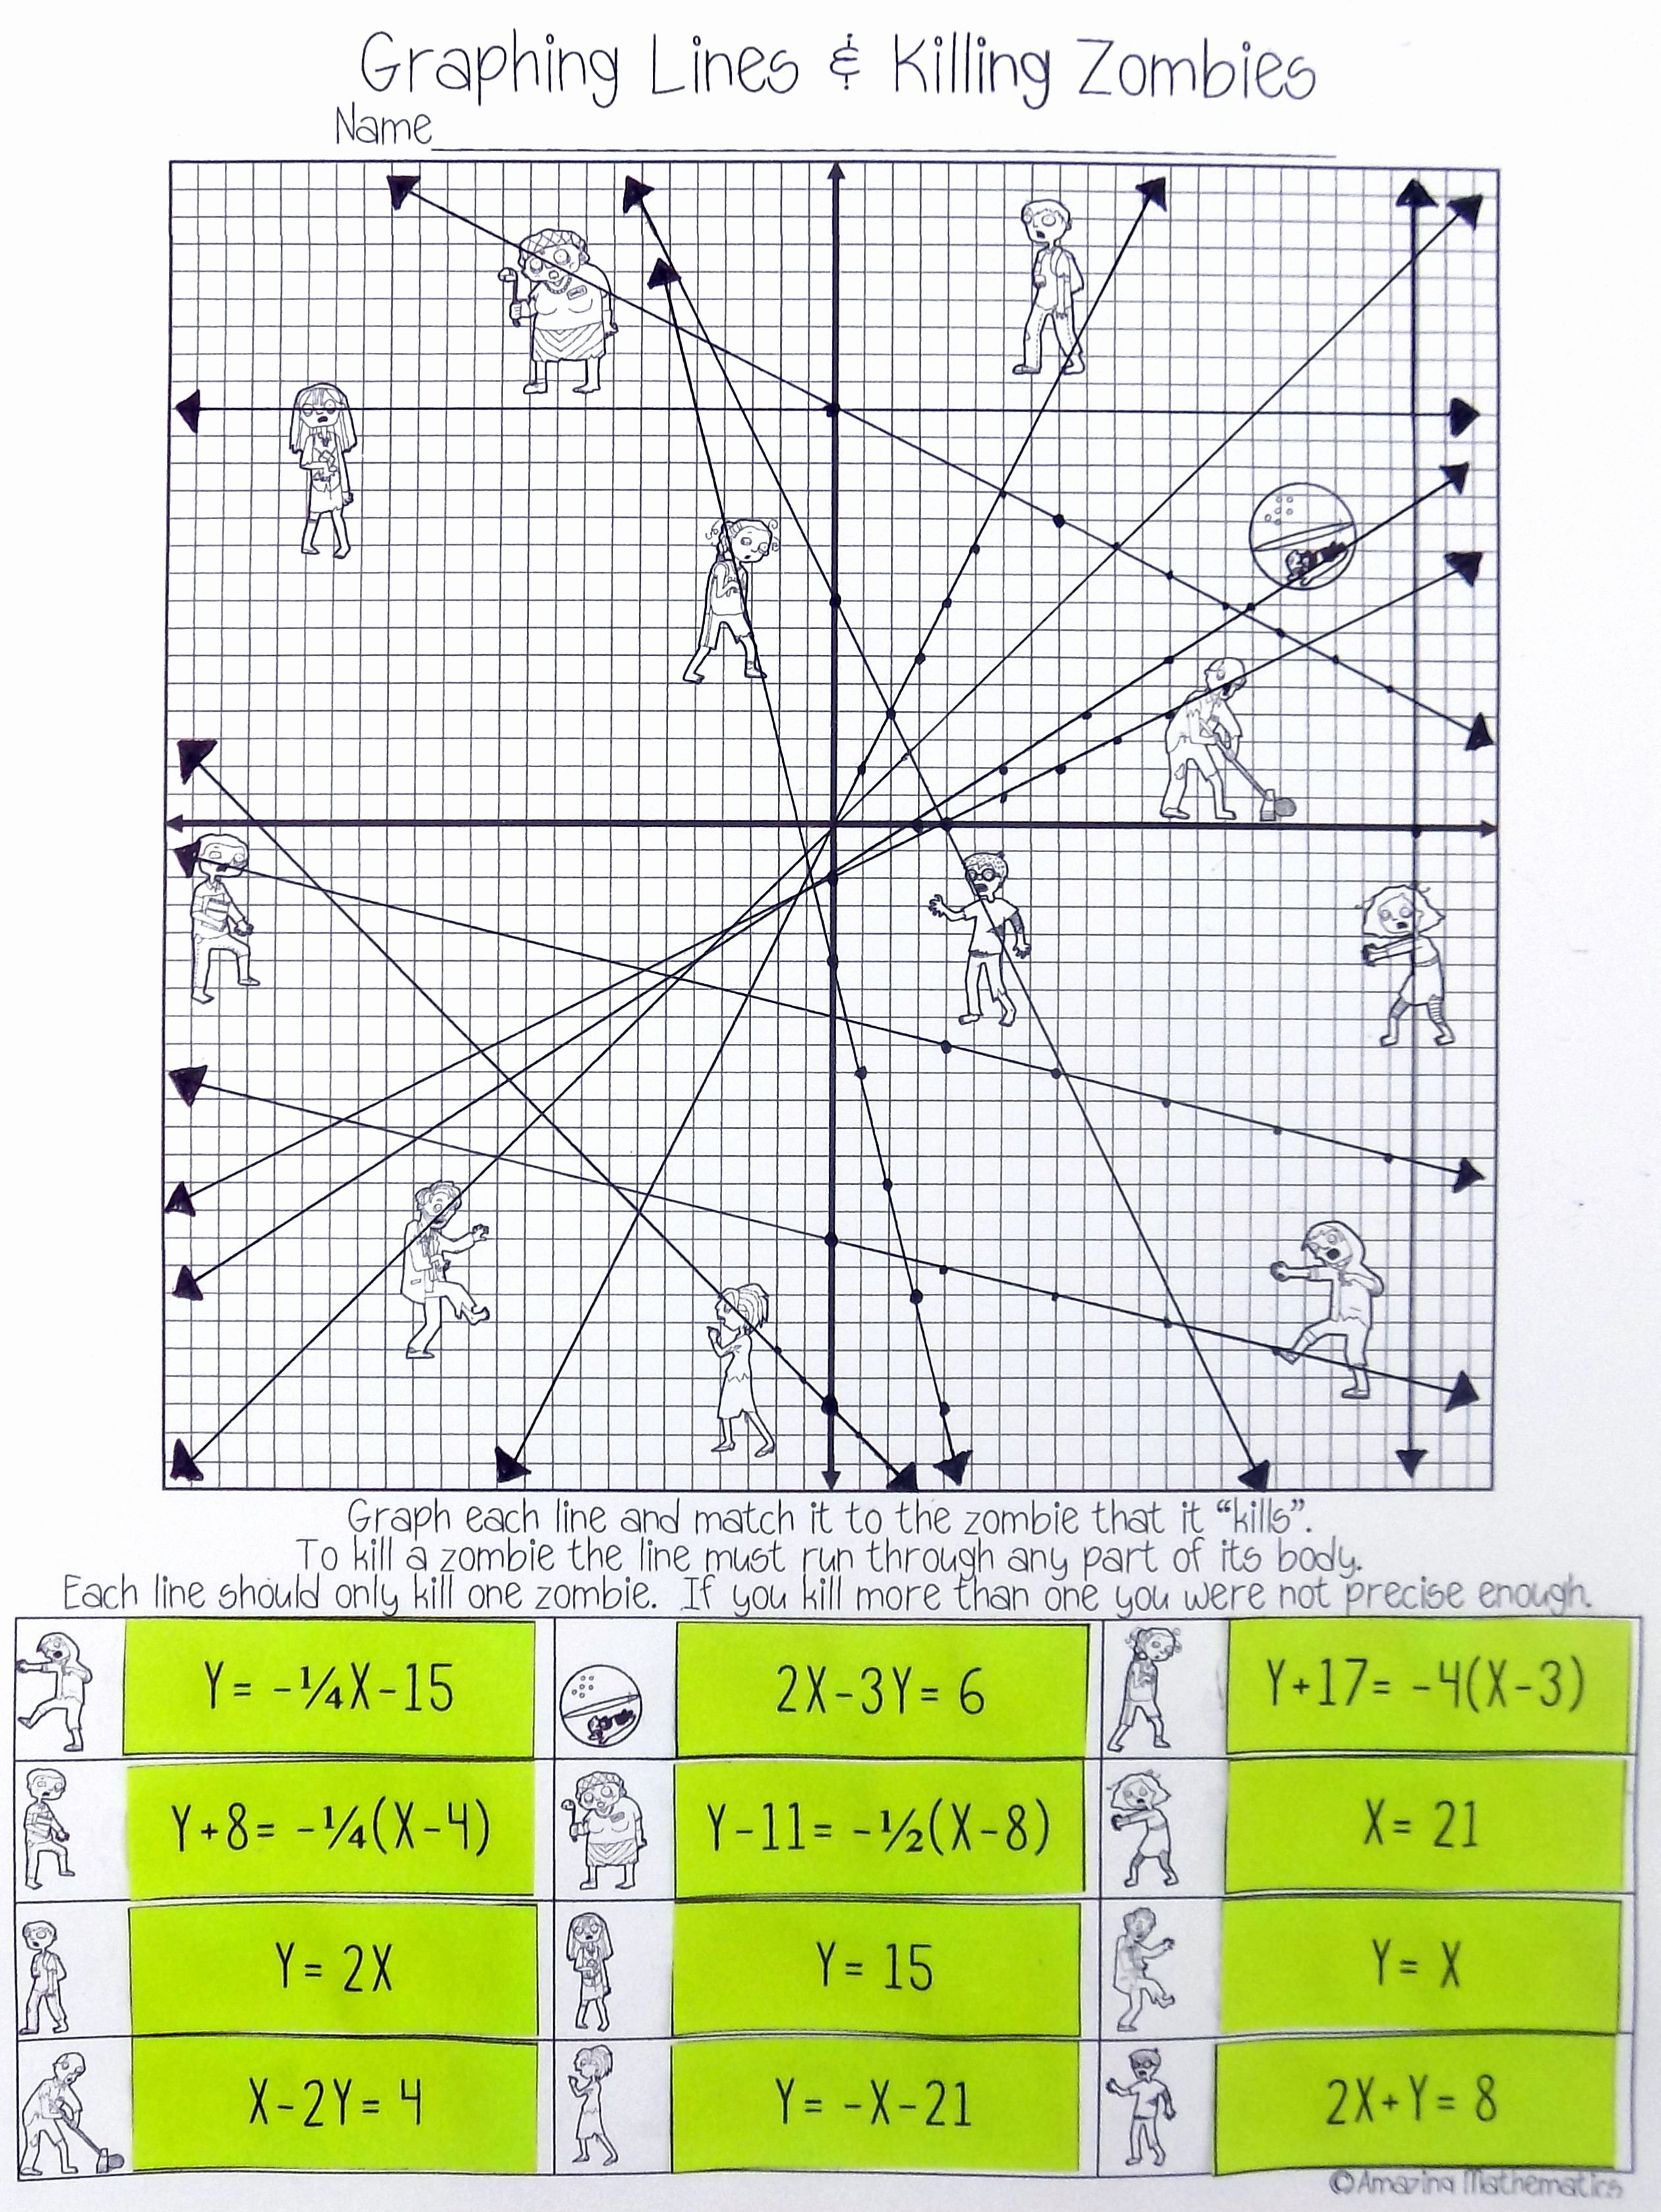 Graphing Linear Equations Practice Worksheet Lovely Graphing Lines & Zombies All 3 forms